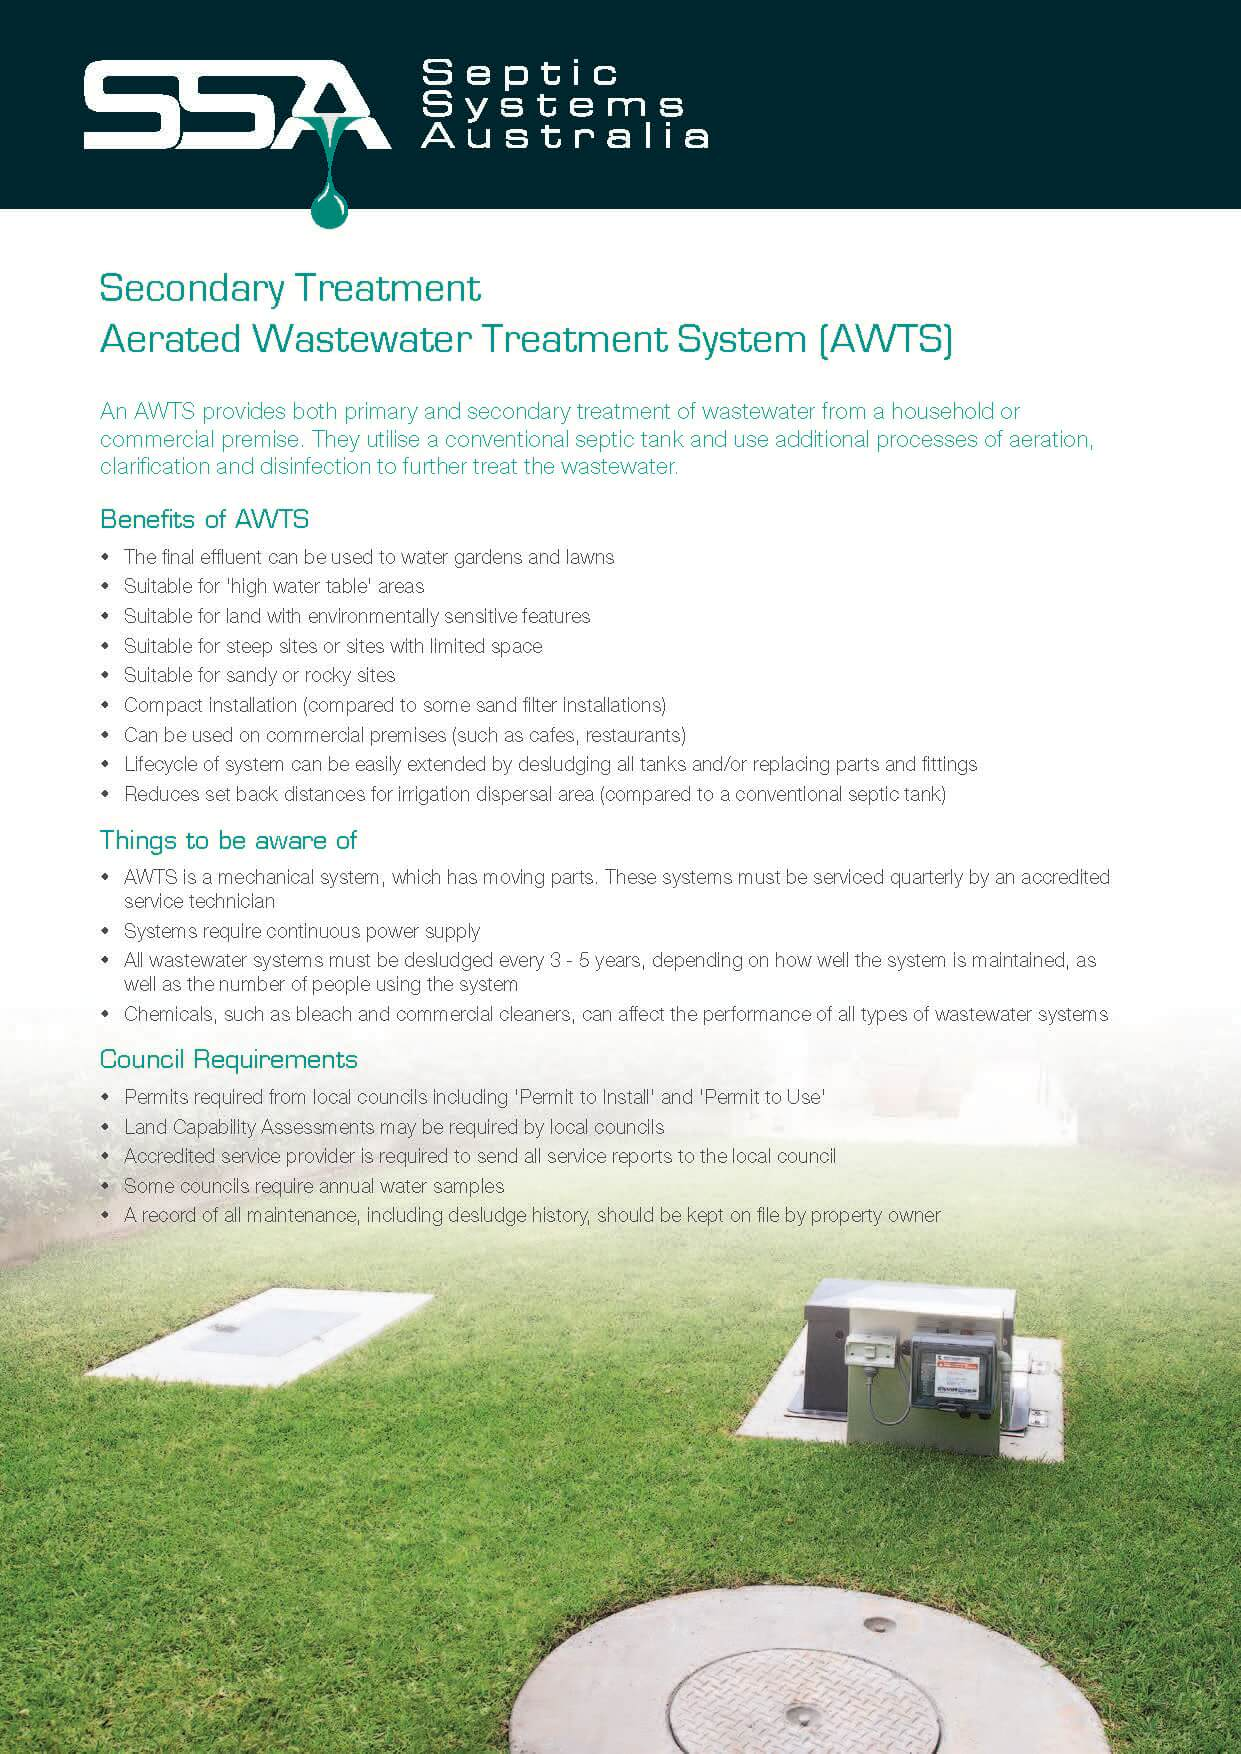 Secondary Treatment: Aerated Wastewater Treatment System (AWTS)